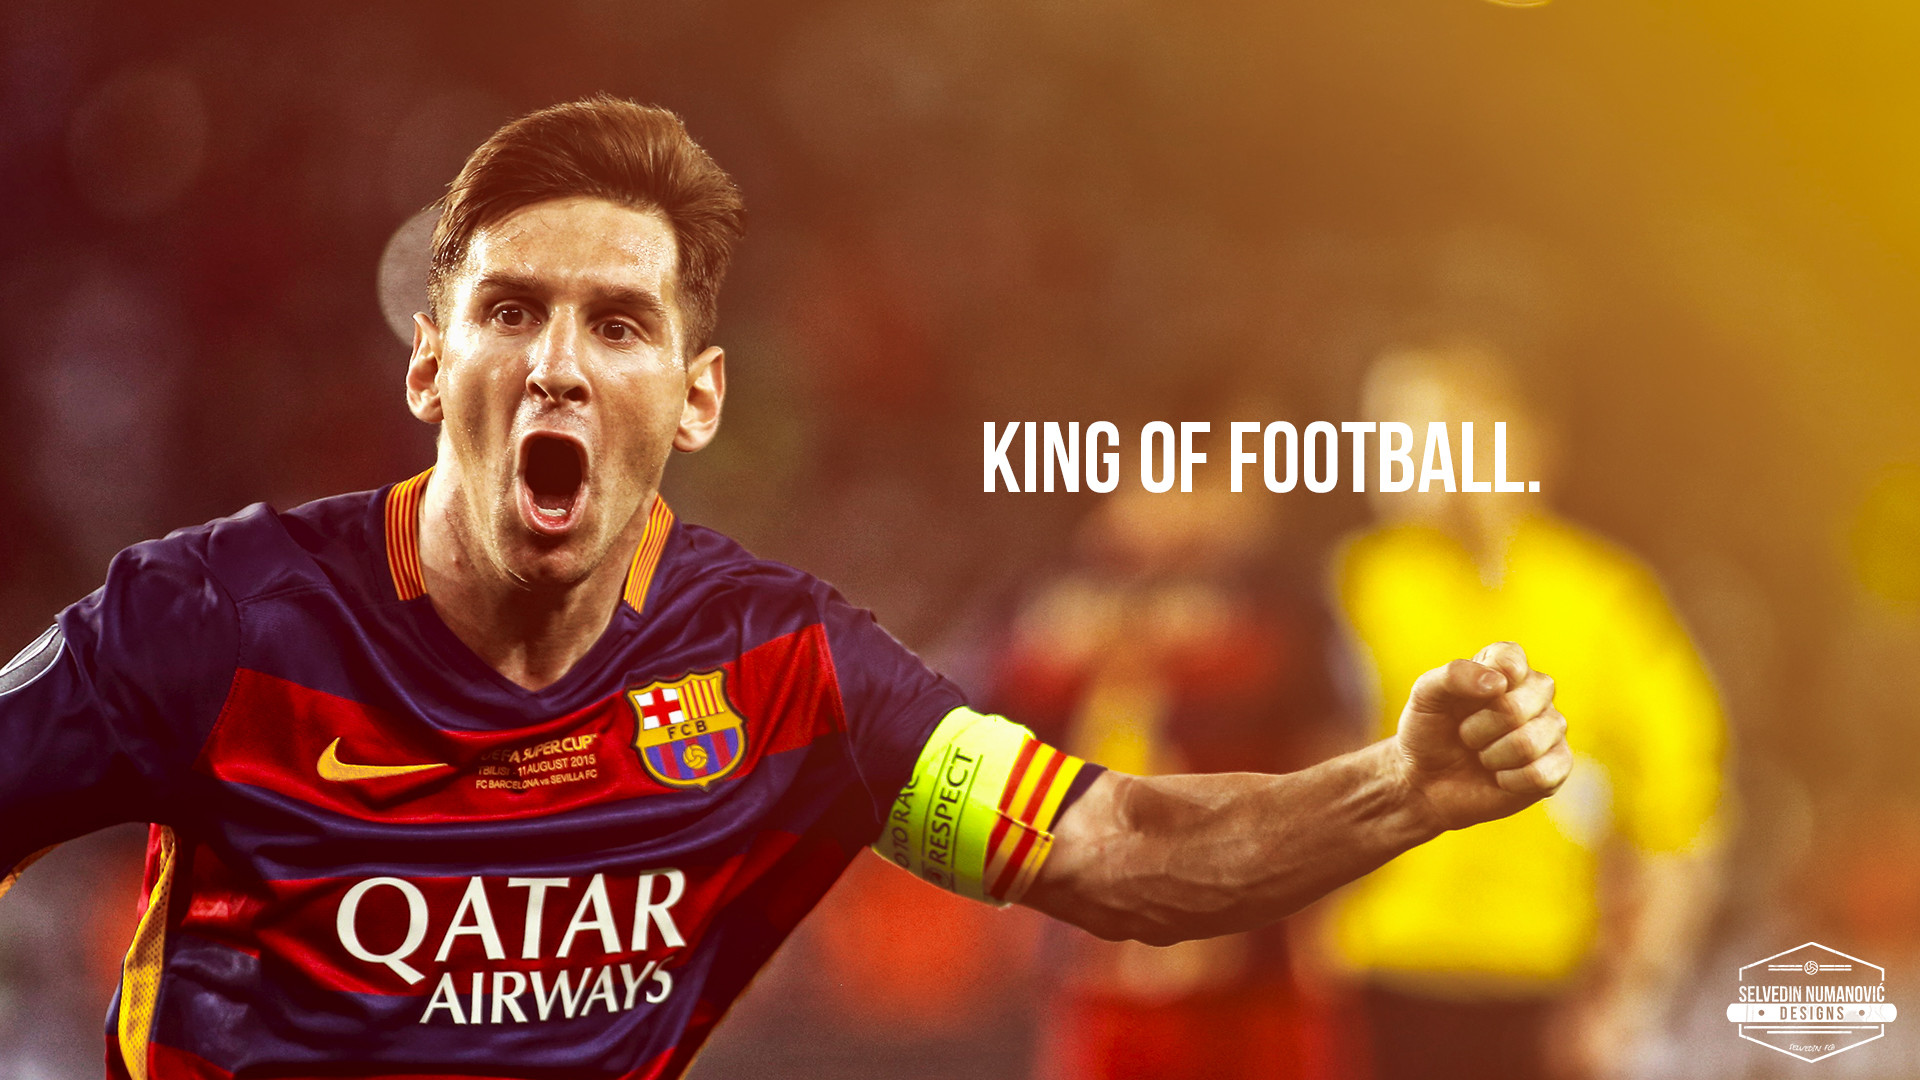 Lionel Messi Iphone HD Wallpaper   HD Wallpapers   Pinterest   Lionel messi,  Hd wallpaper and Wallpaper